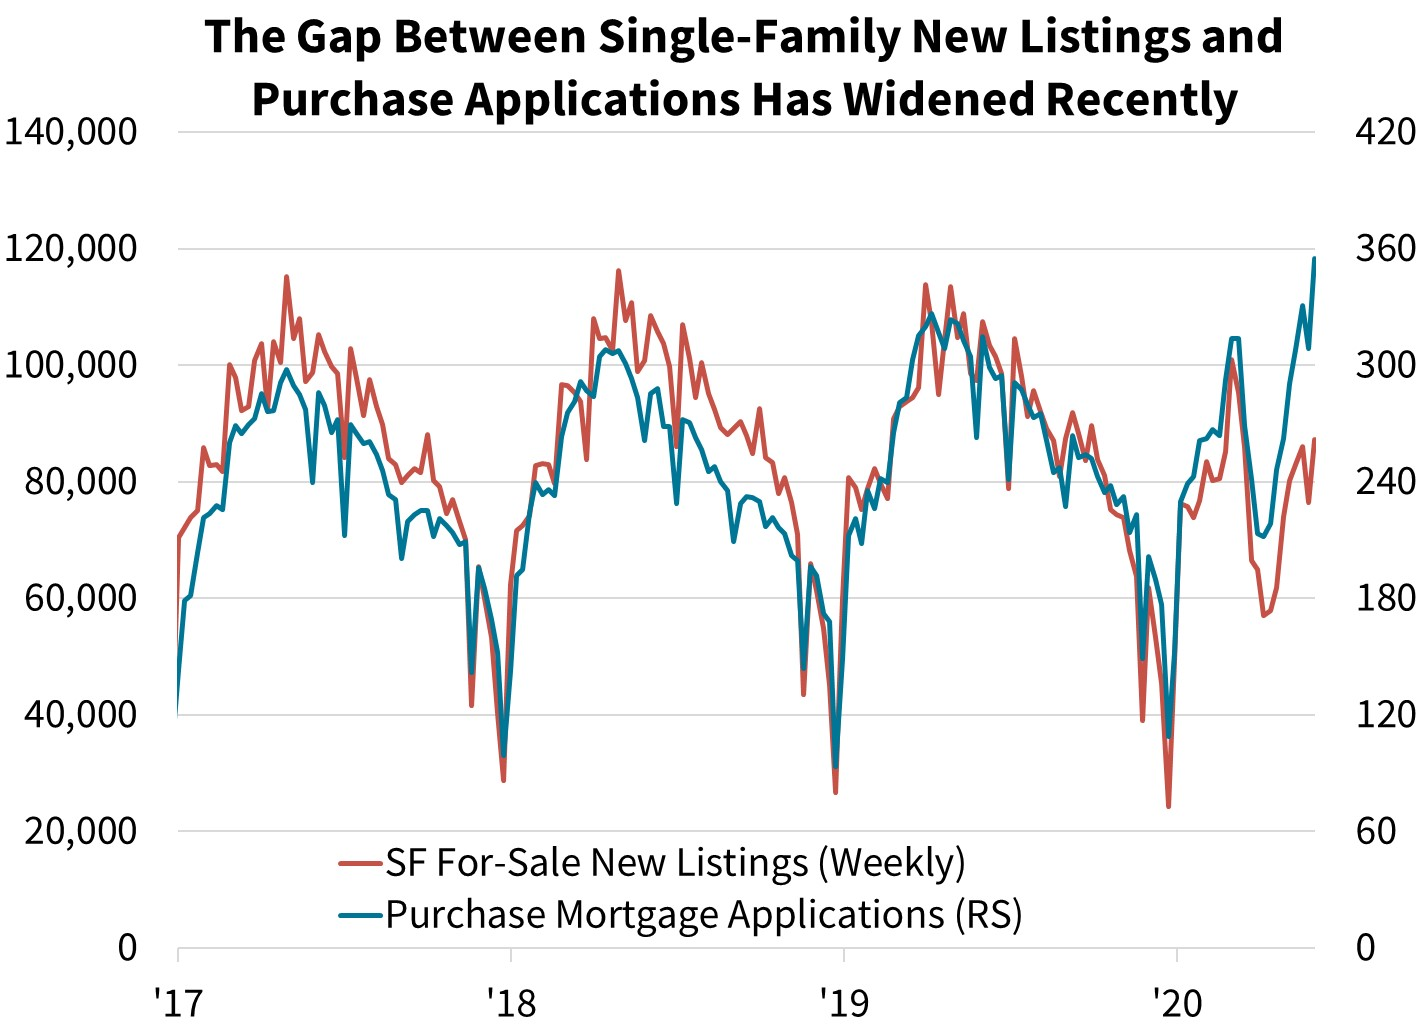 The Gap Between Single-Family New Listings an Purchase Applications Has Widened Recently